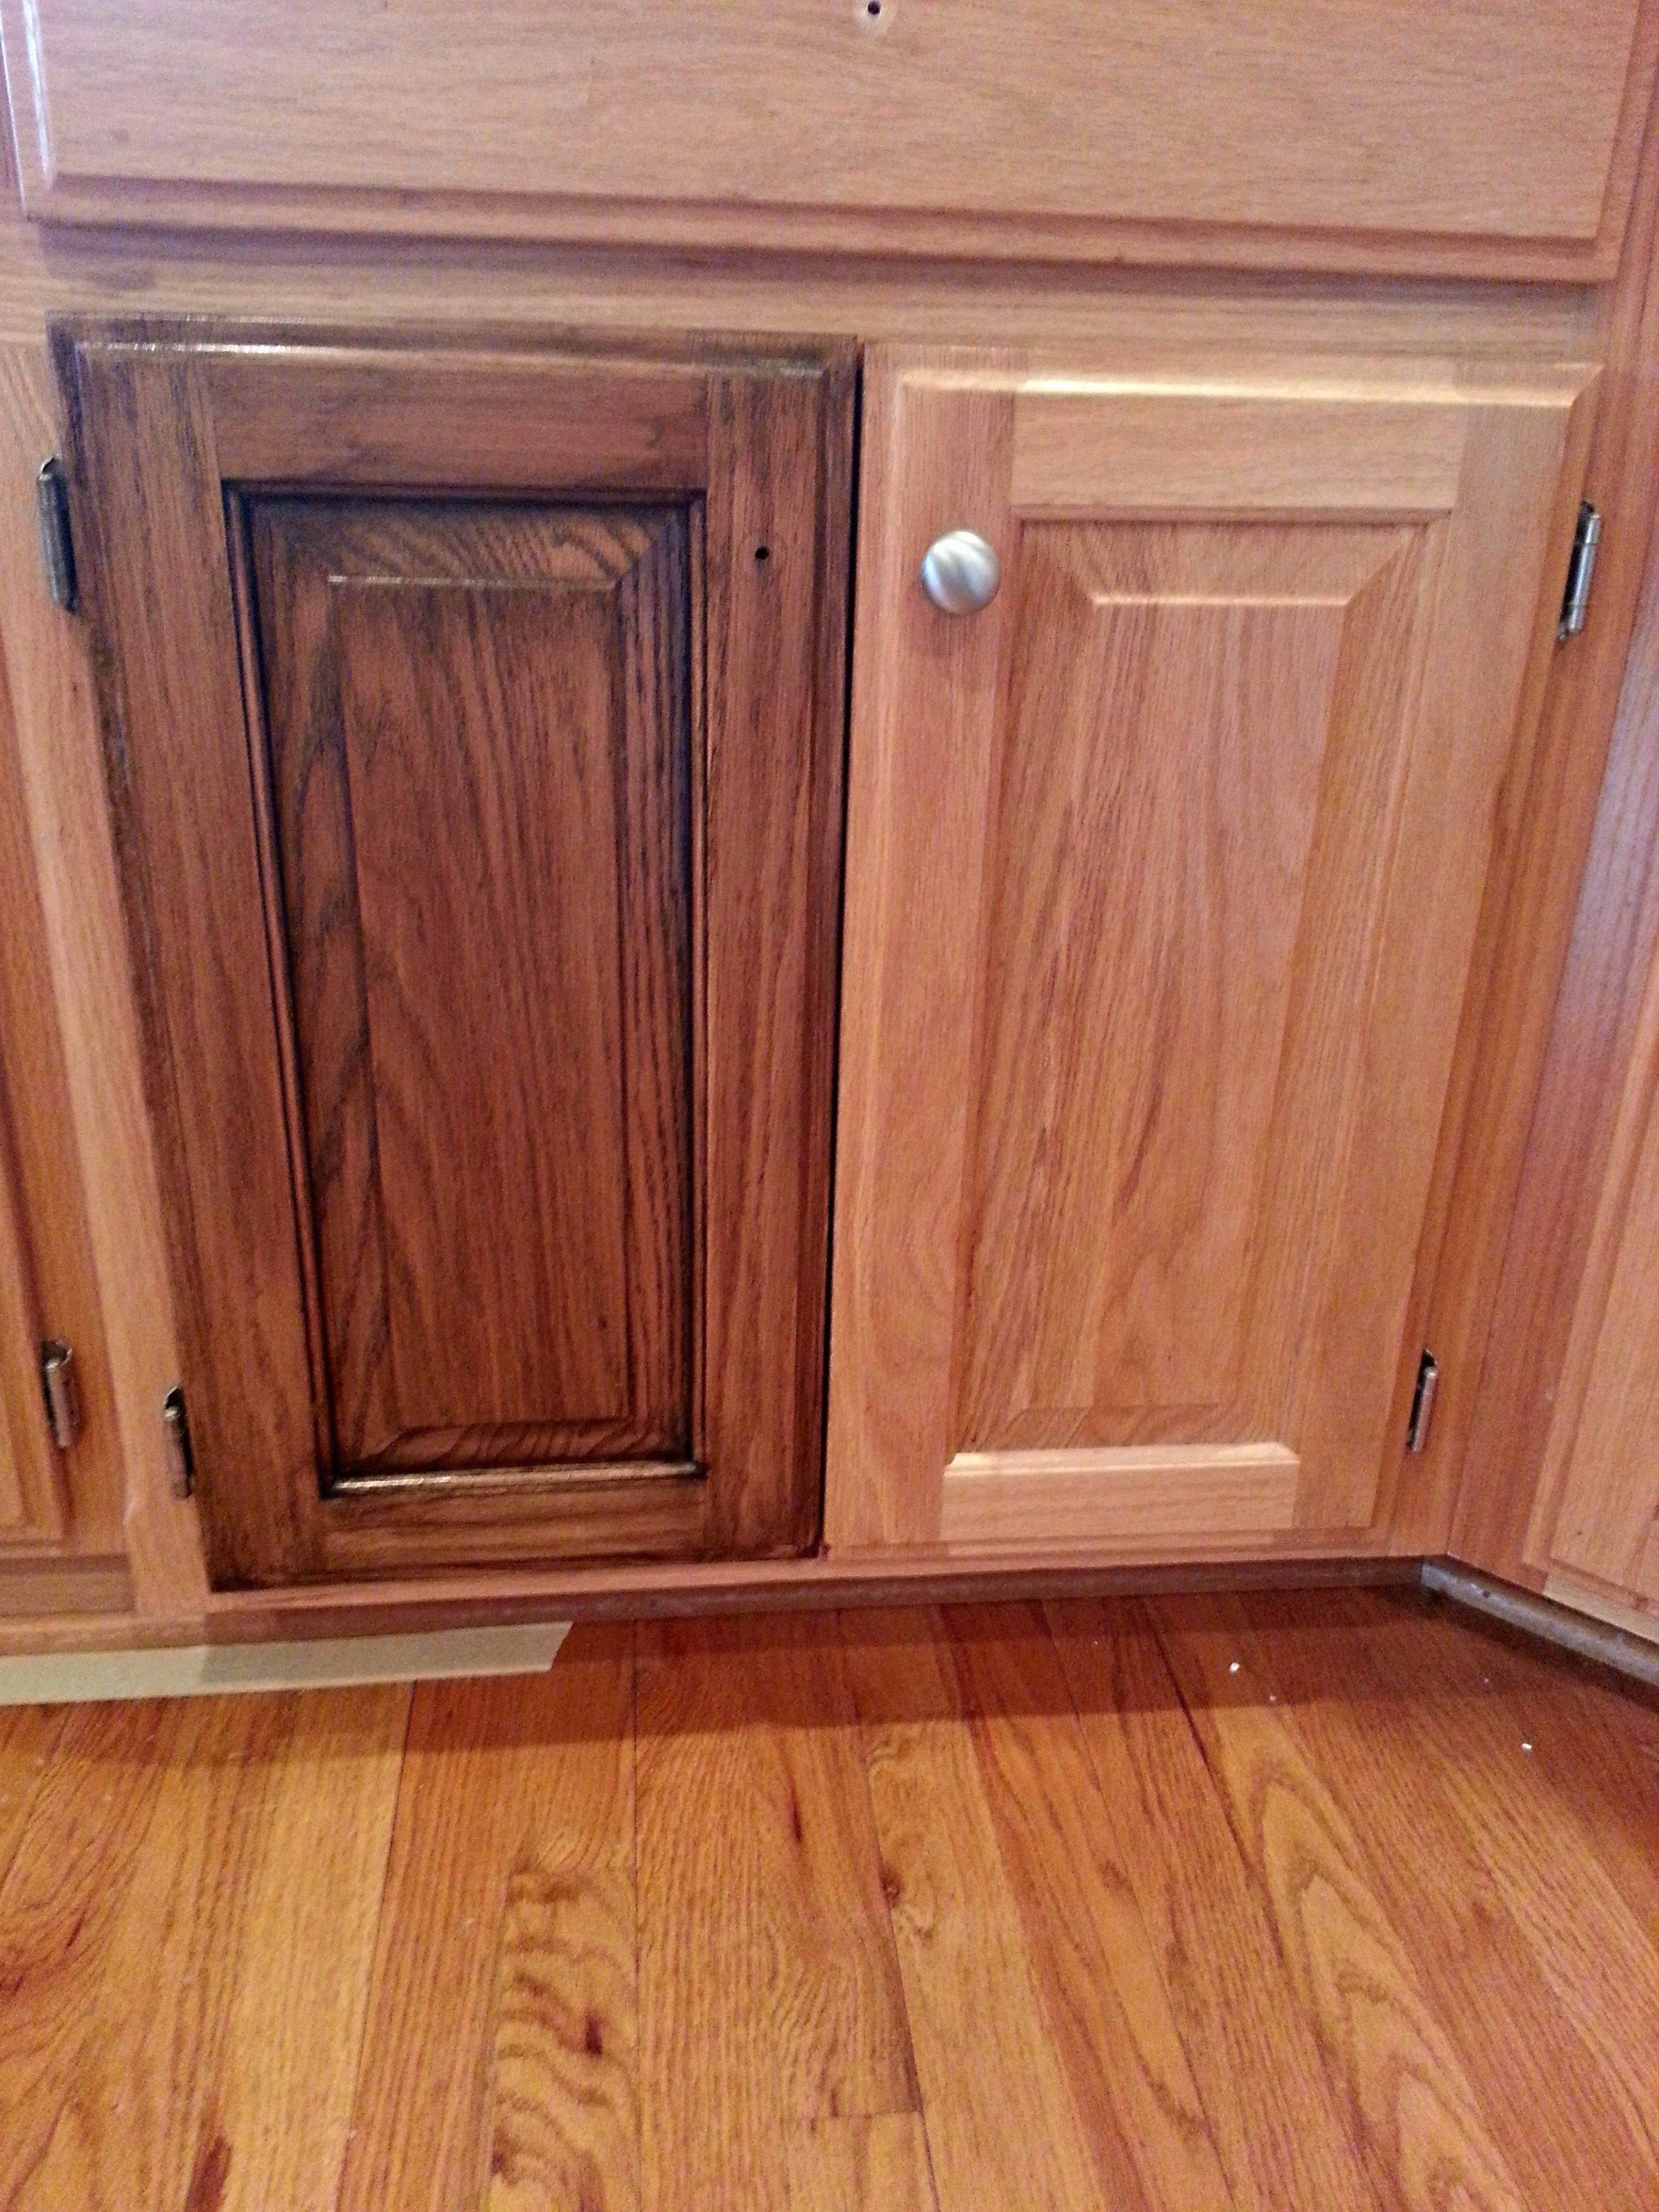 Change Your Tired Oak Kitchen Cabinets To A Dark Walnut Stain Cheap Kitchen Cabinets Staining Cabinets Restaining Kitchen Cabinets